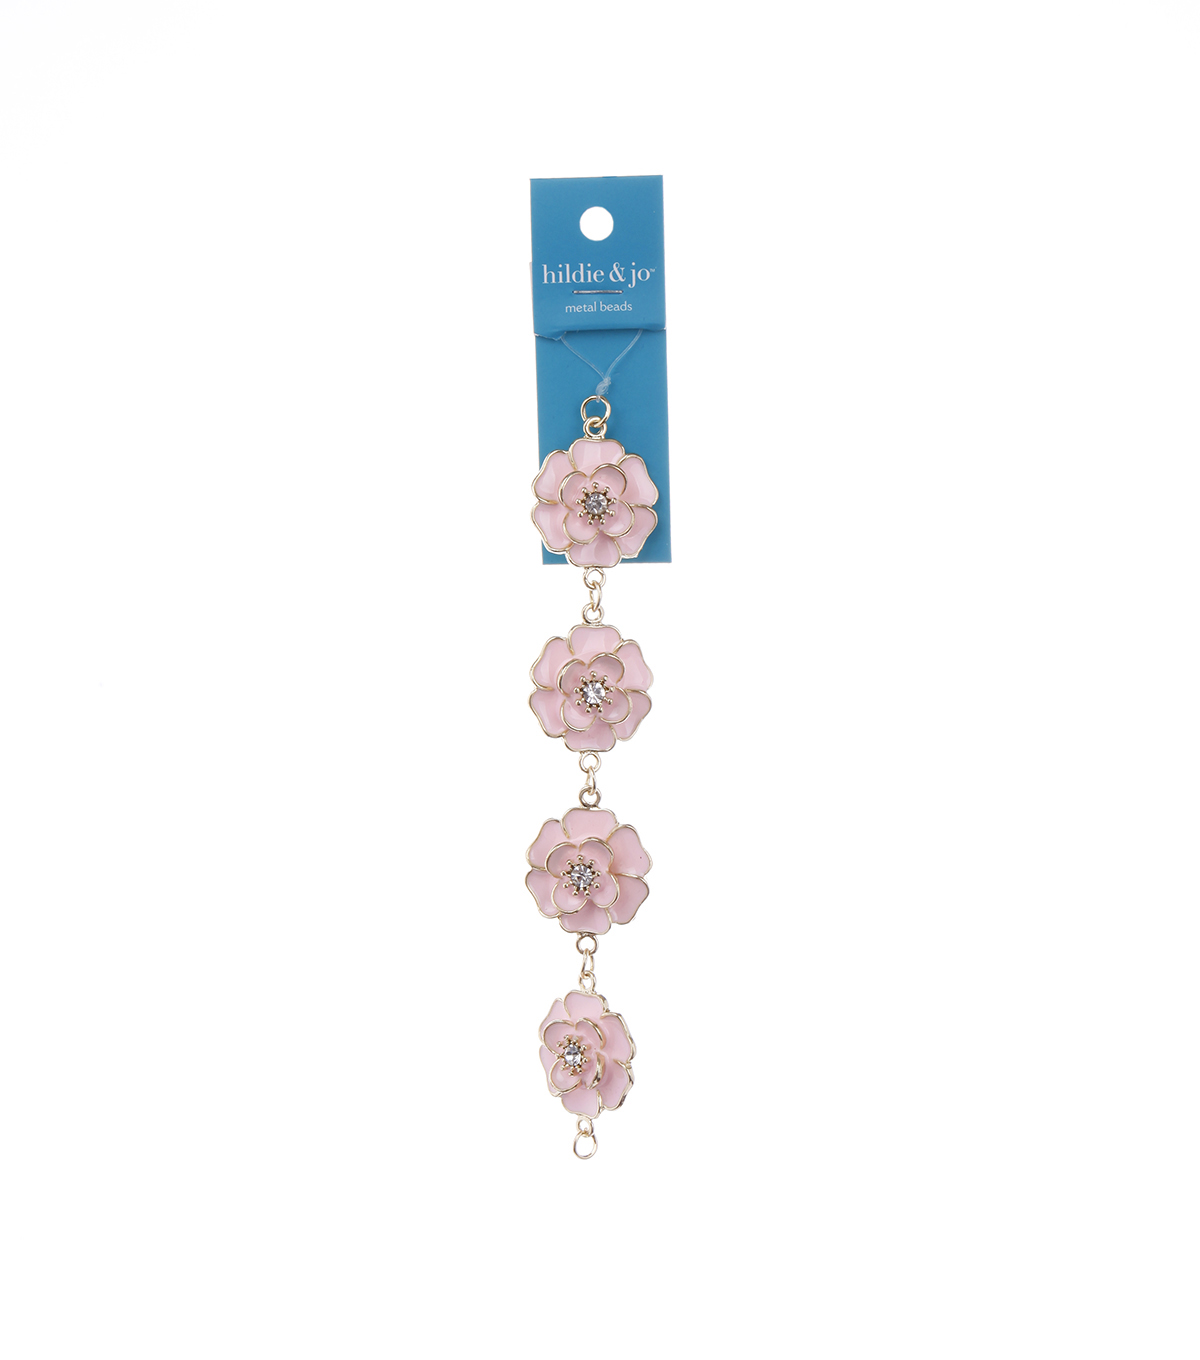 Bliss Beads Pink Metal Flowers